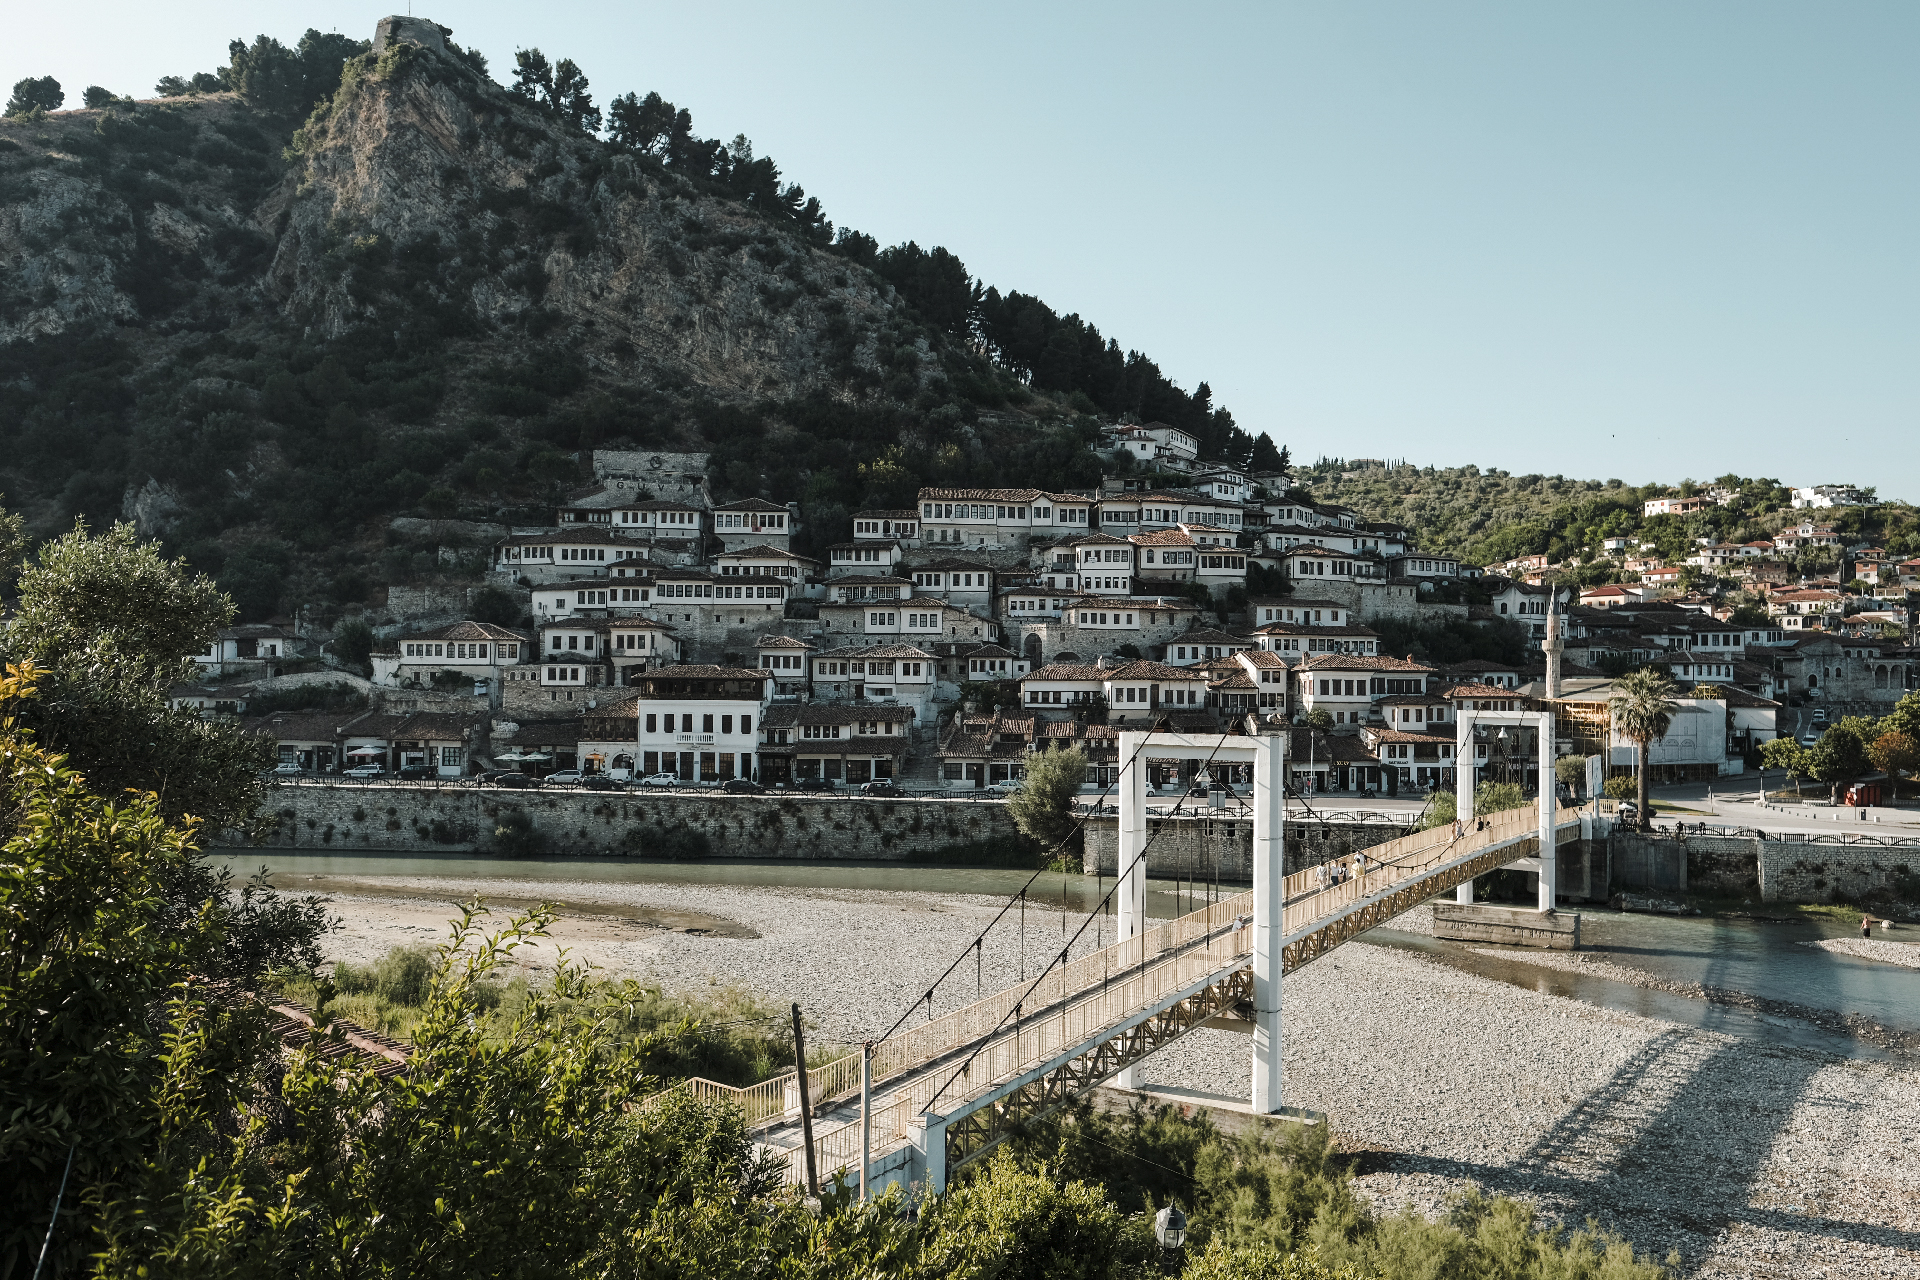 Bridge crossing the river dividing the two parts of Berat